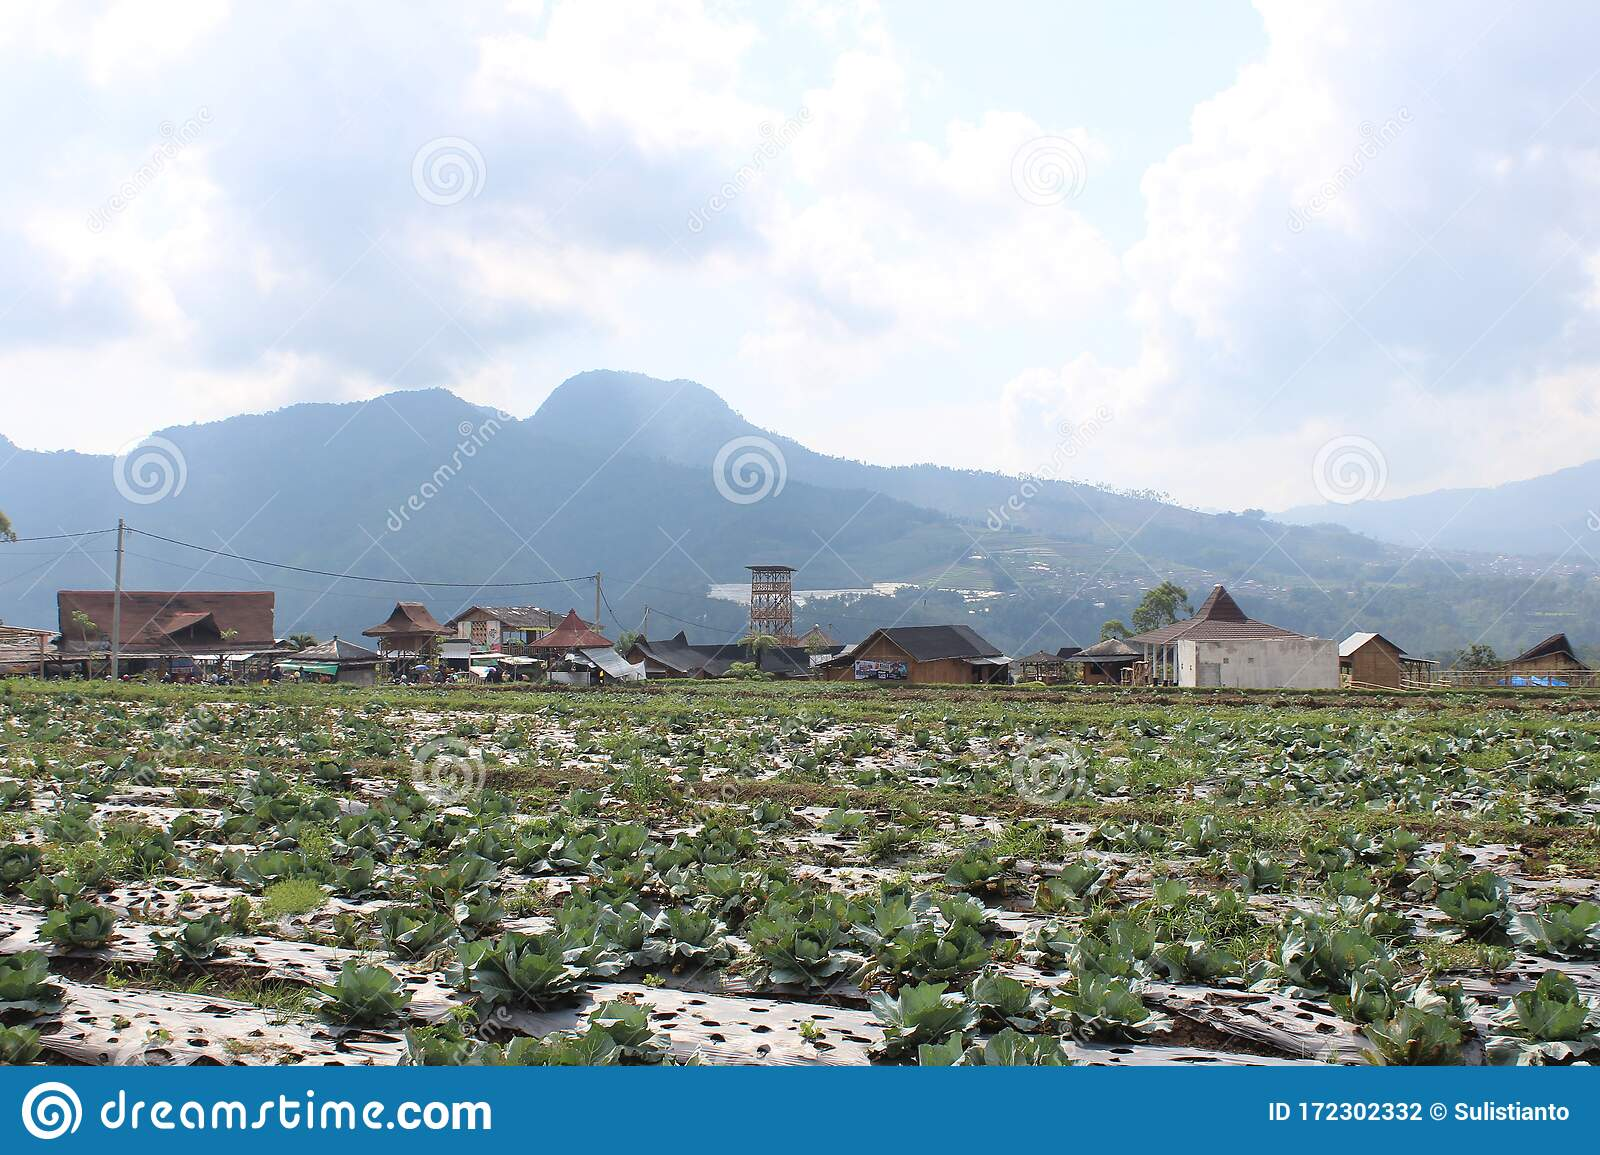 Cabbage Farming In The City Of Malang Indonesia Stock Photo Image Of Outdoor Dark 172302332